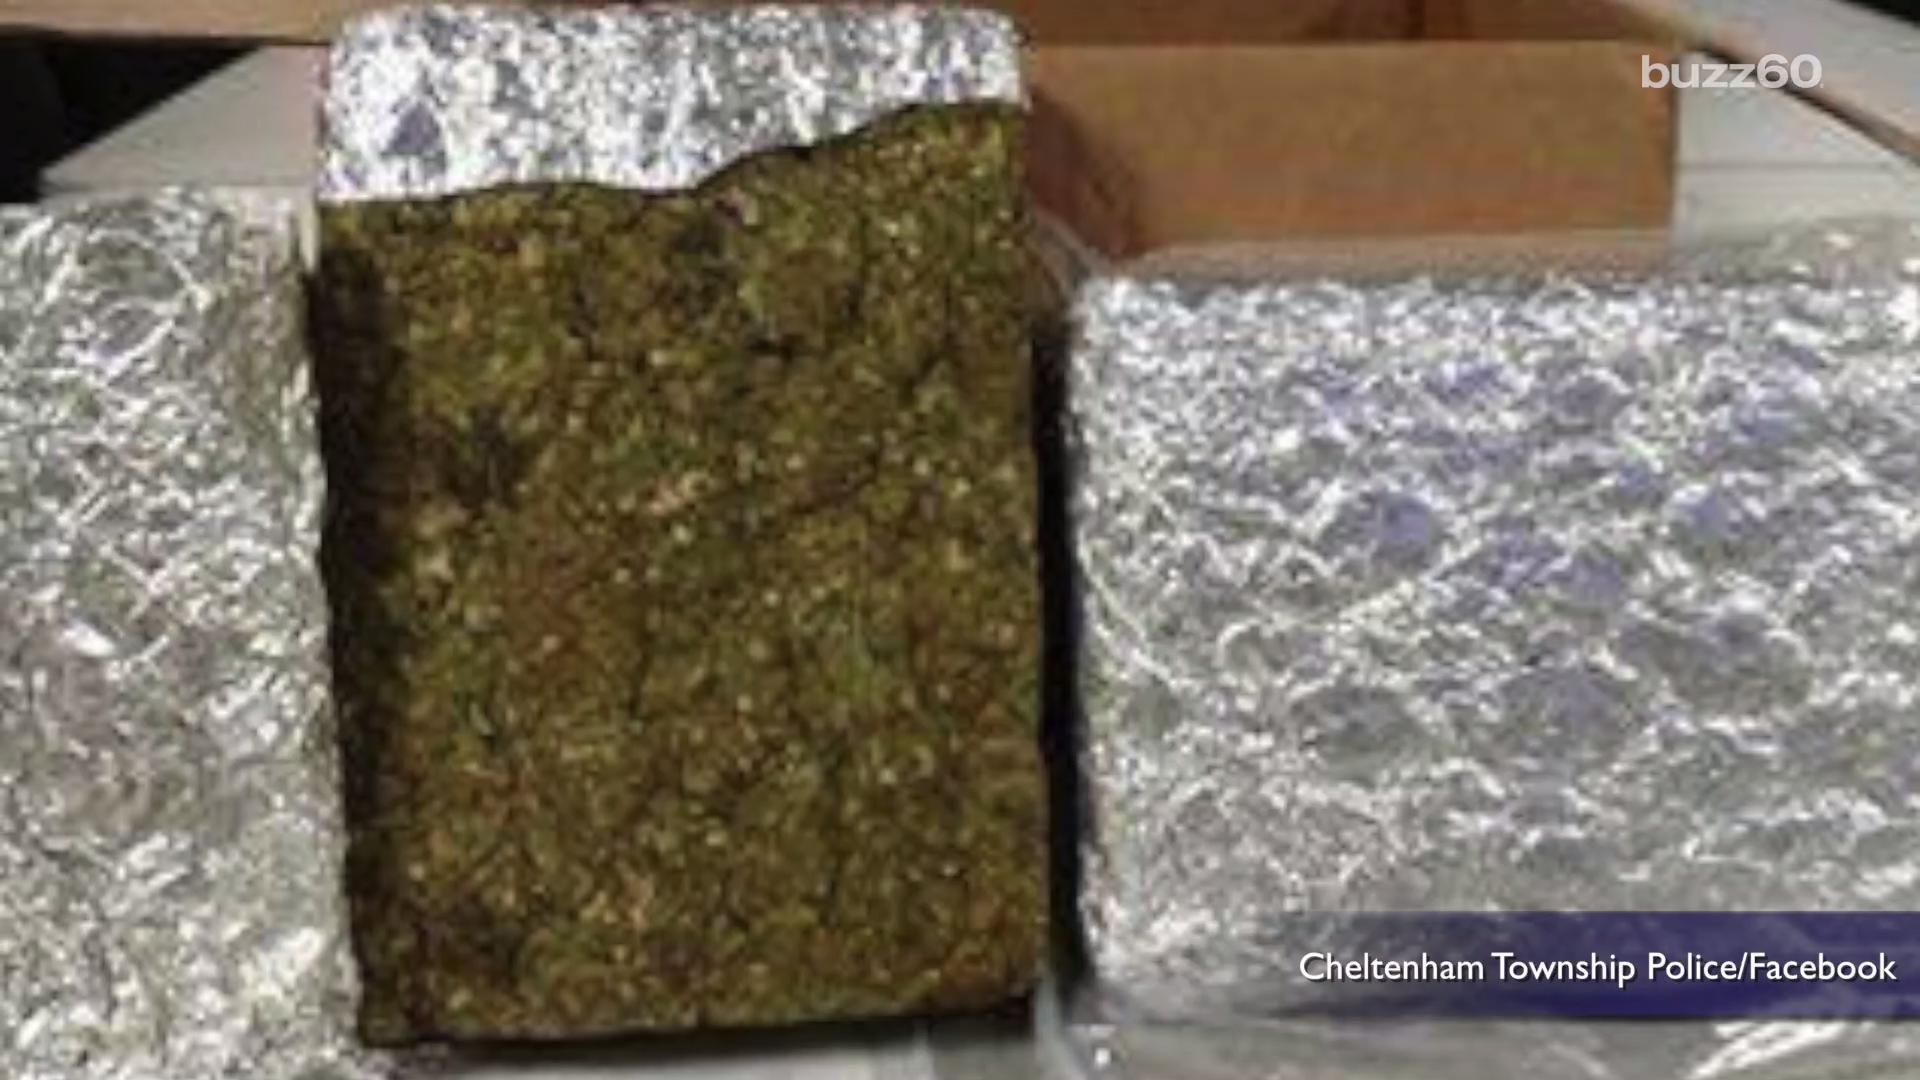 Owner of 'Lost' Marijuana Brick Invited to Stop by Police Station